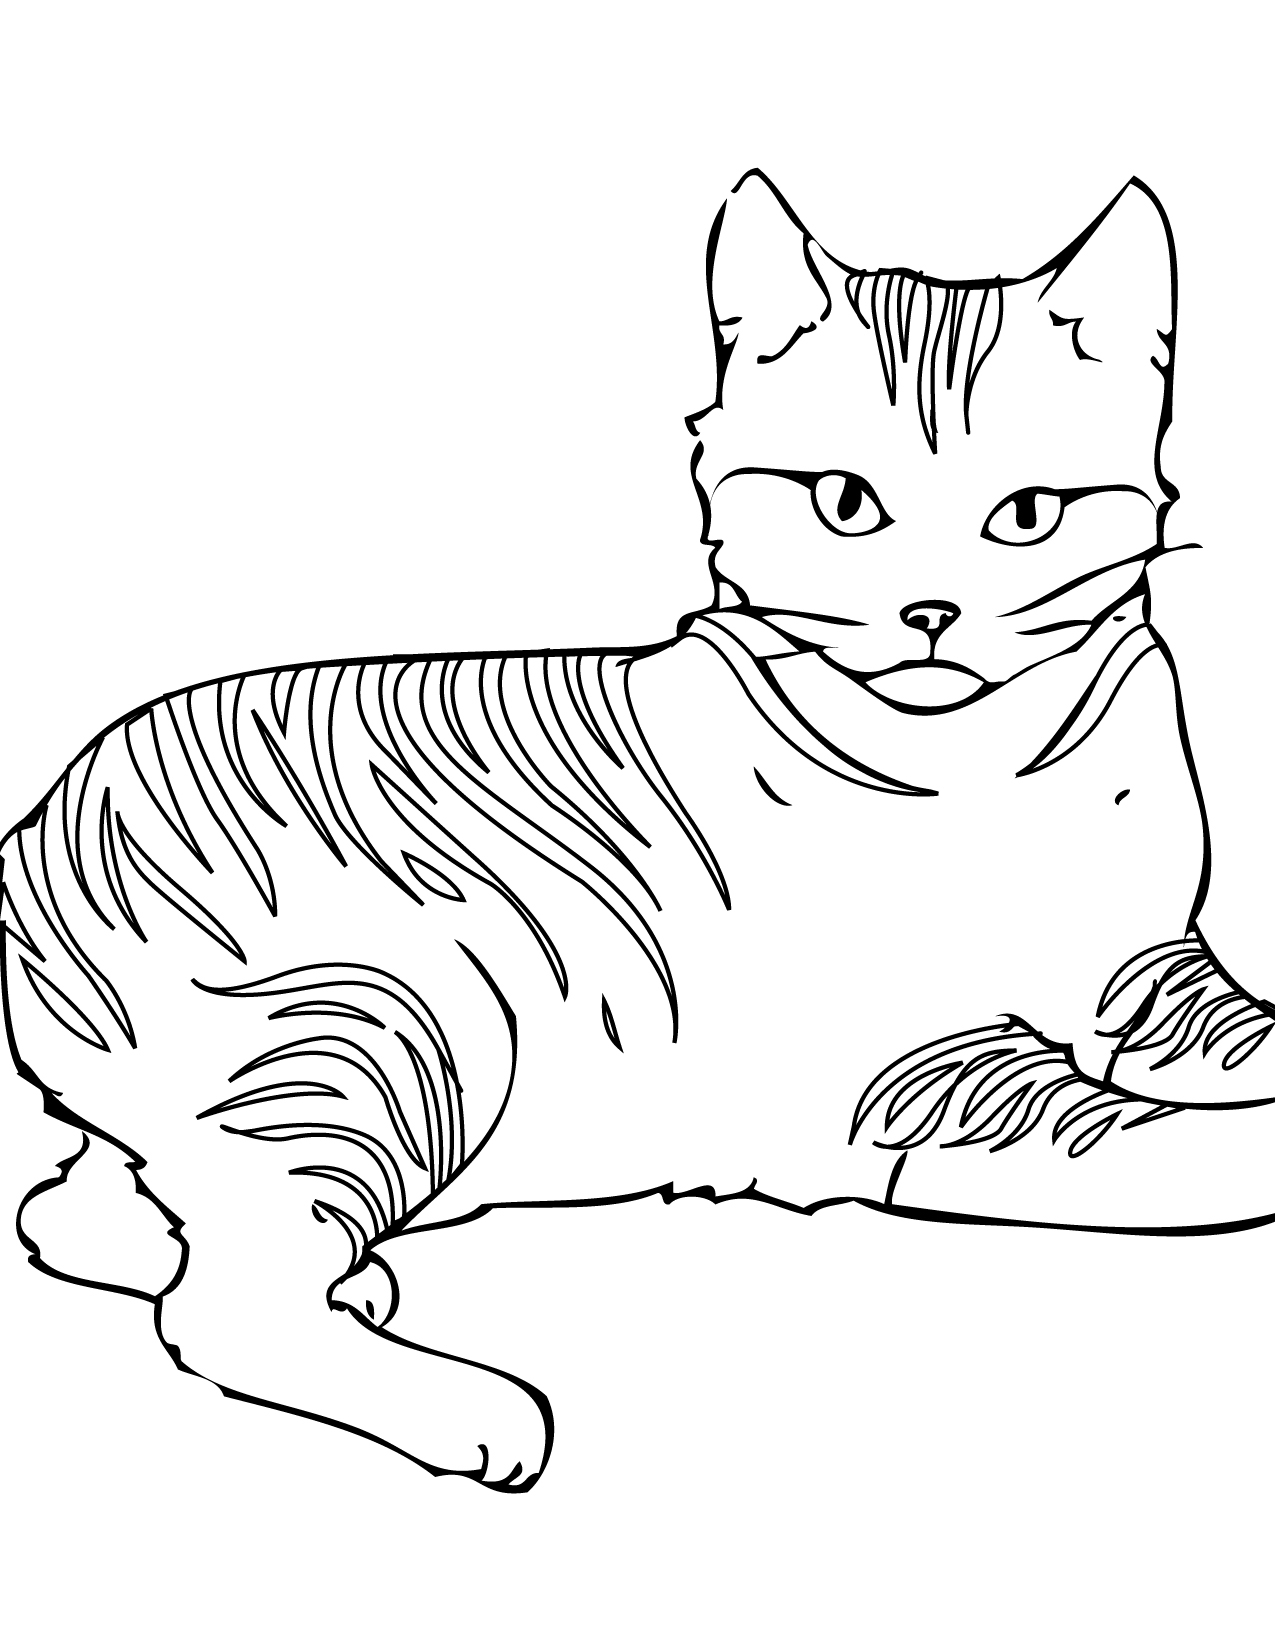 Wild West Coloring Pages At Getcolorings